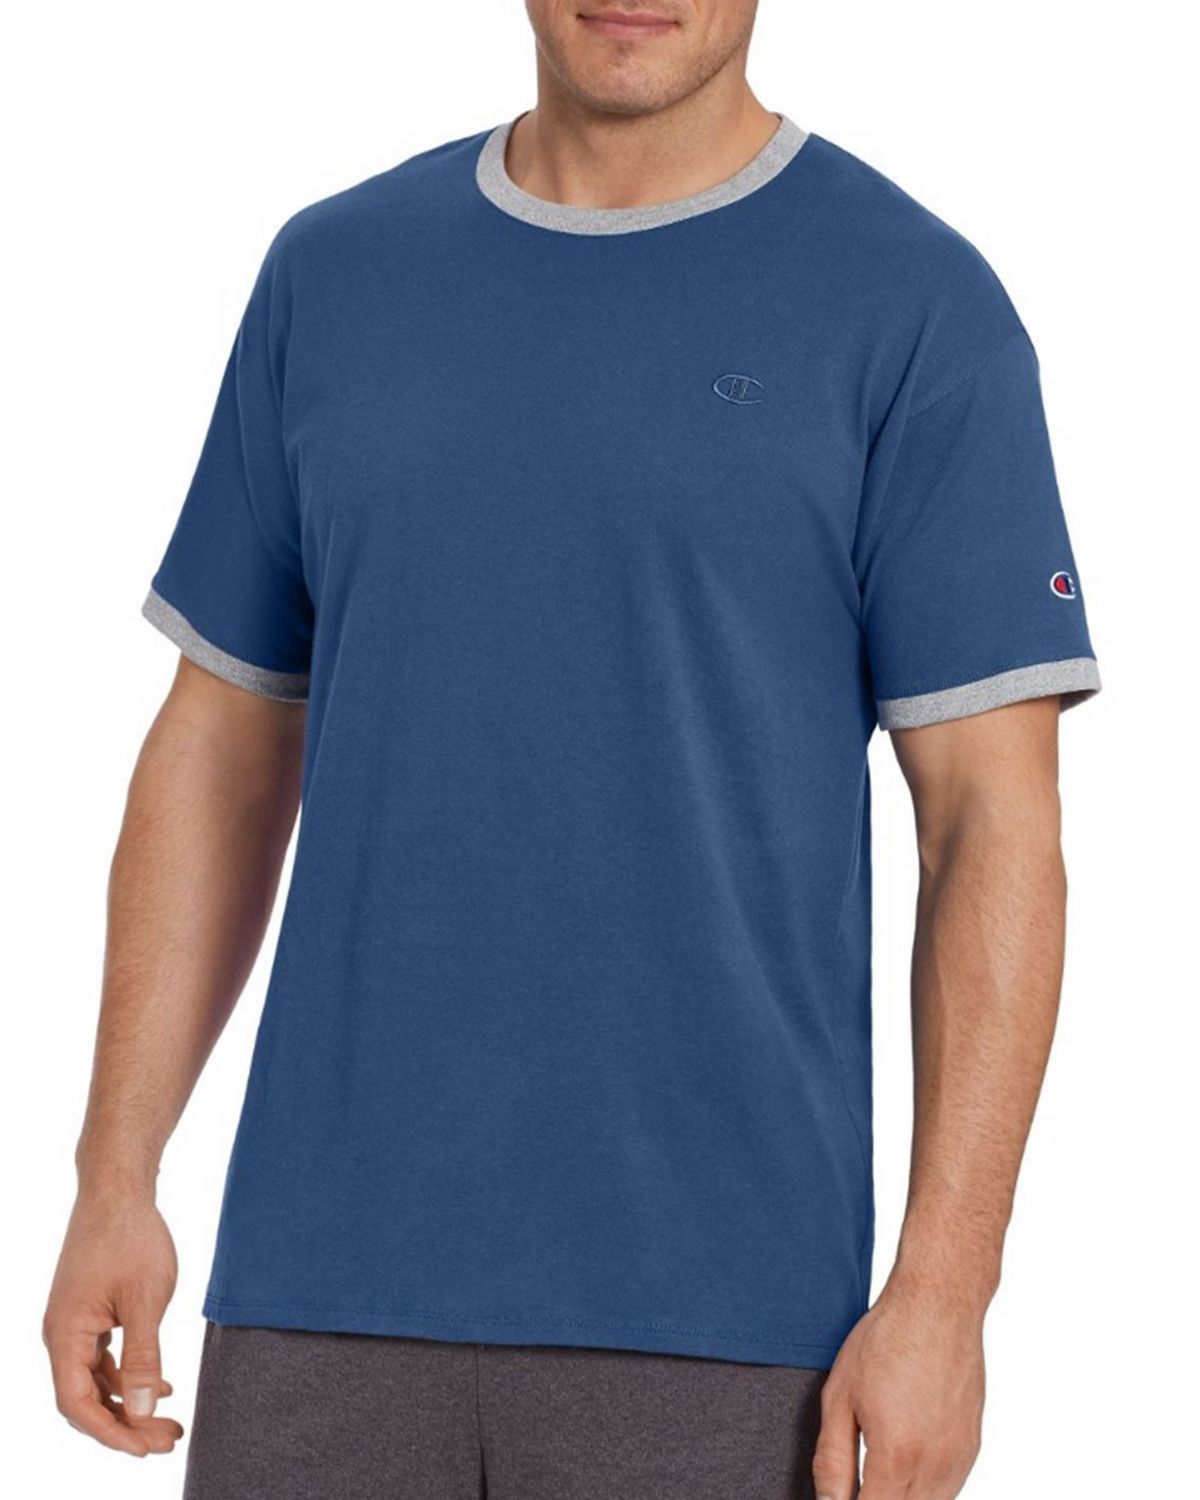 Champion T0220 Mens Ringer Tee - Oxford Gray - S T0220